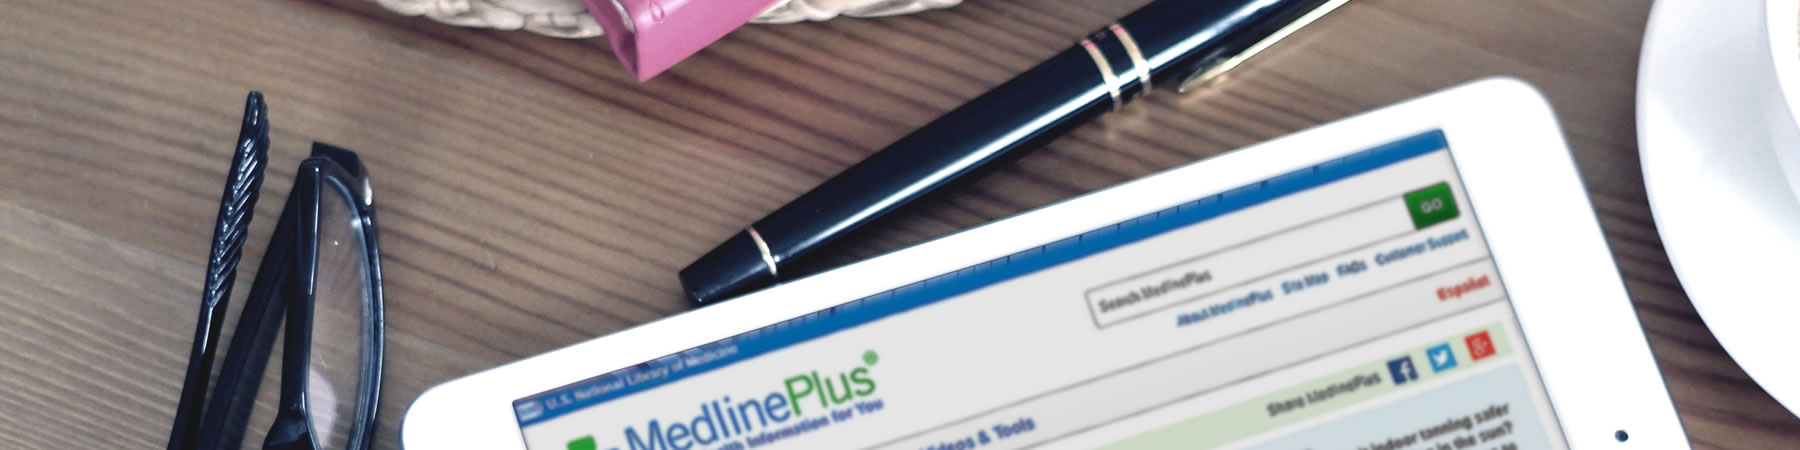 tablet showing medline plus website on screen